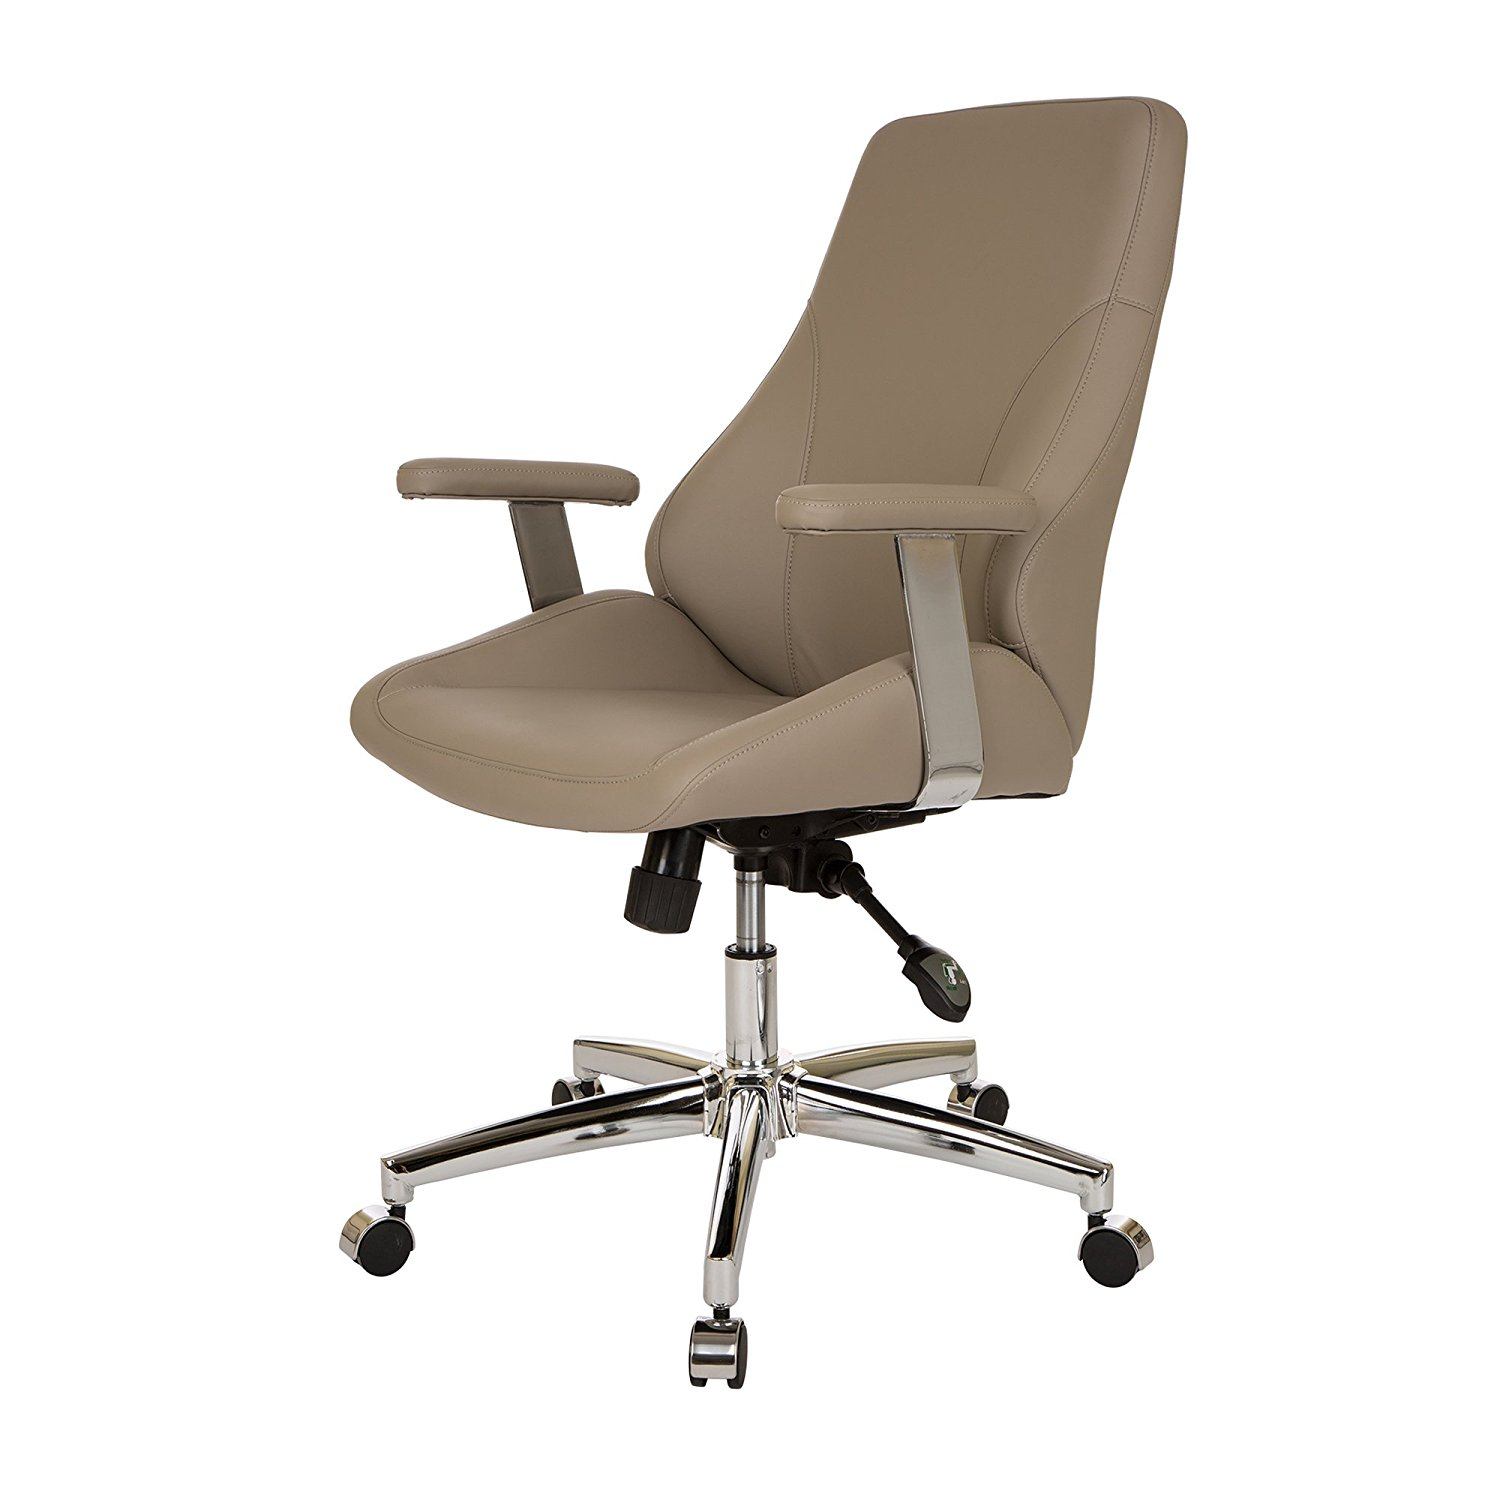 Cheap Office Chairs Cheap 2018 Office Chairs Under 200 Best Cheap Reviews